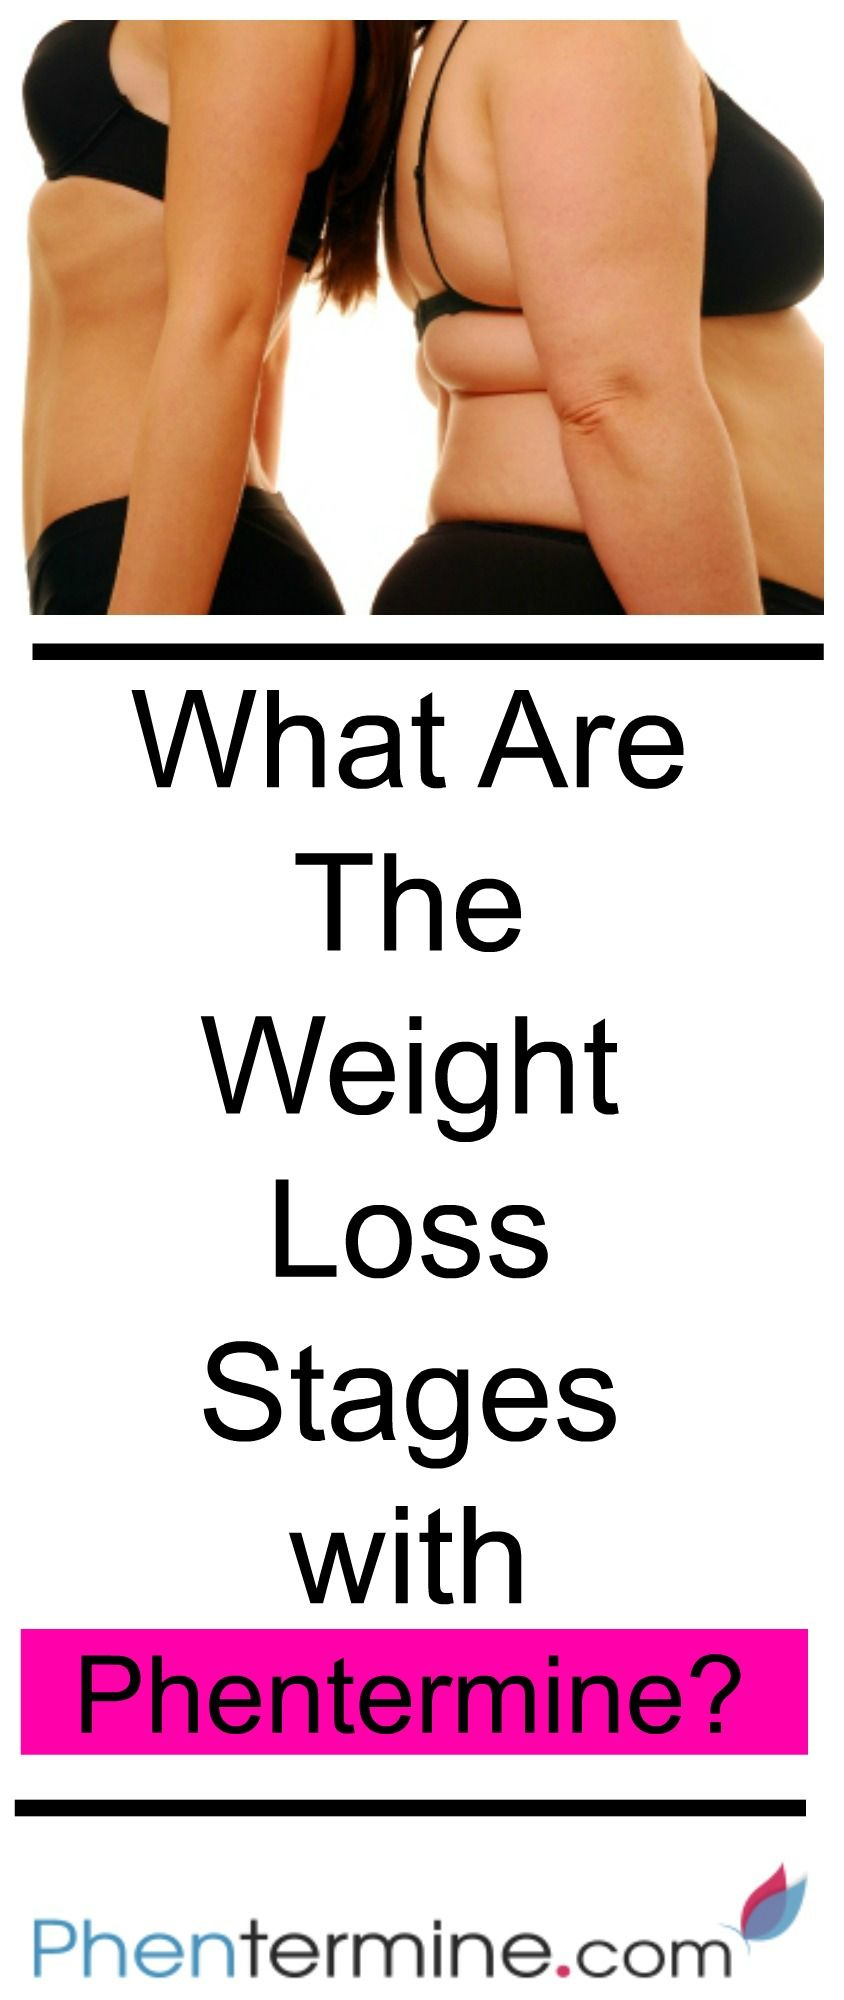 Pictorial essay sunidhi chauhan weight loss journey blog 0-5: Use light